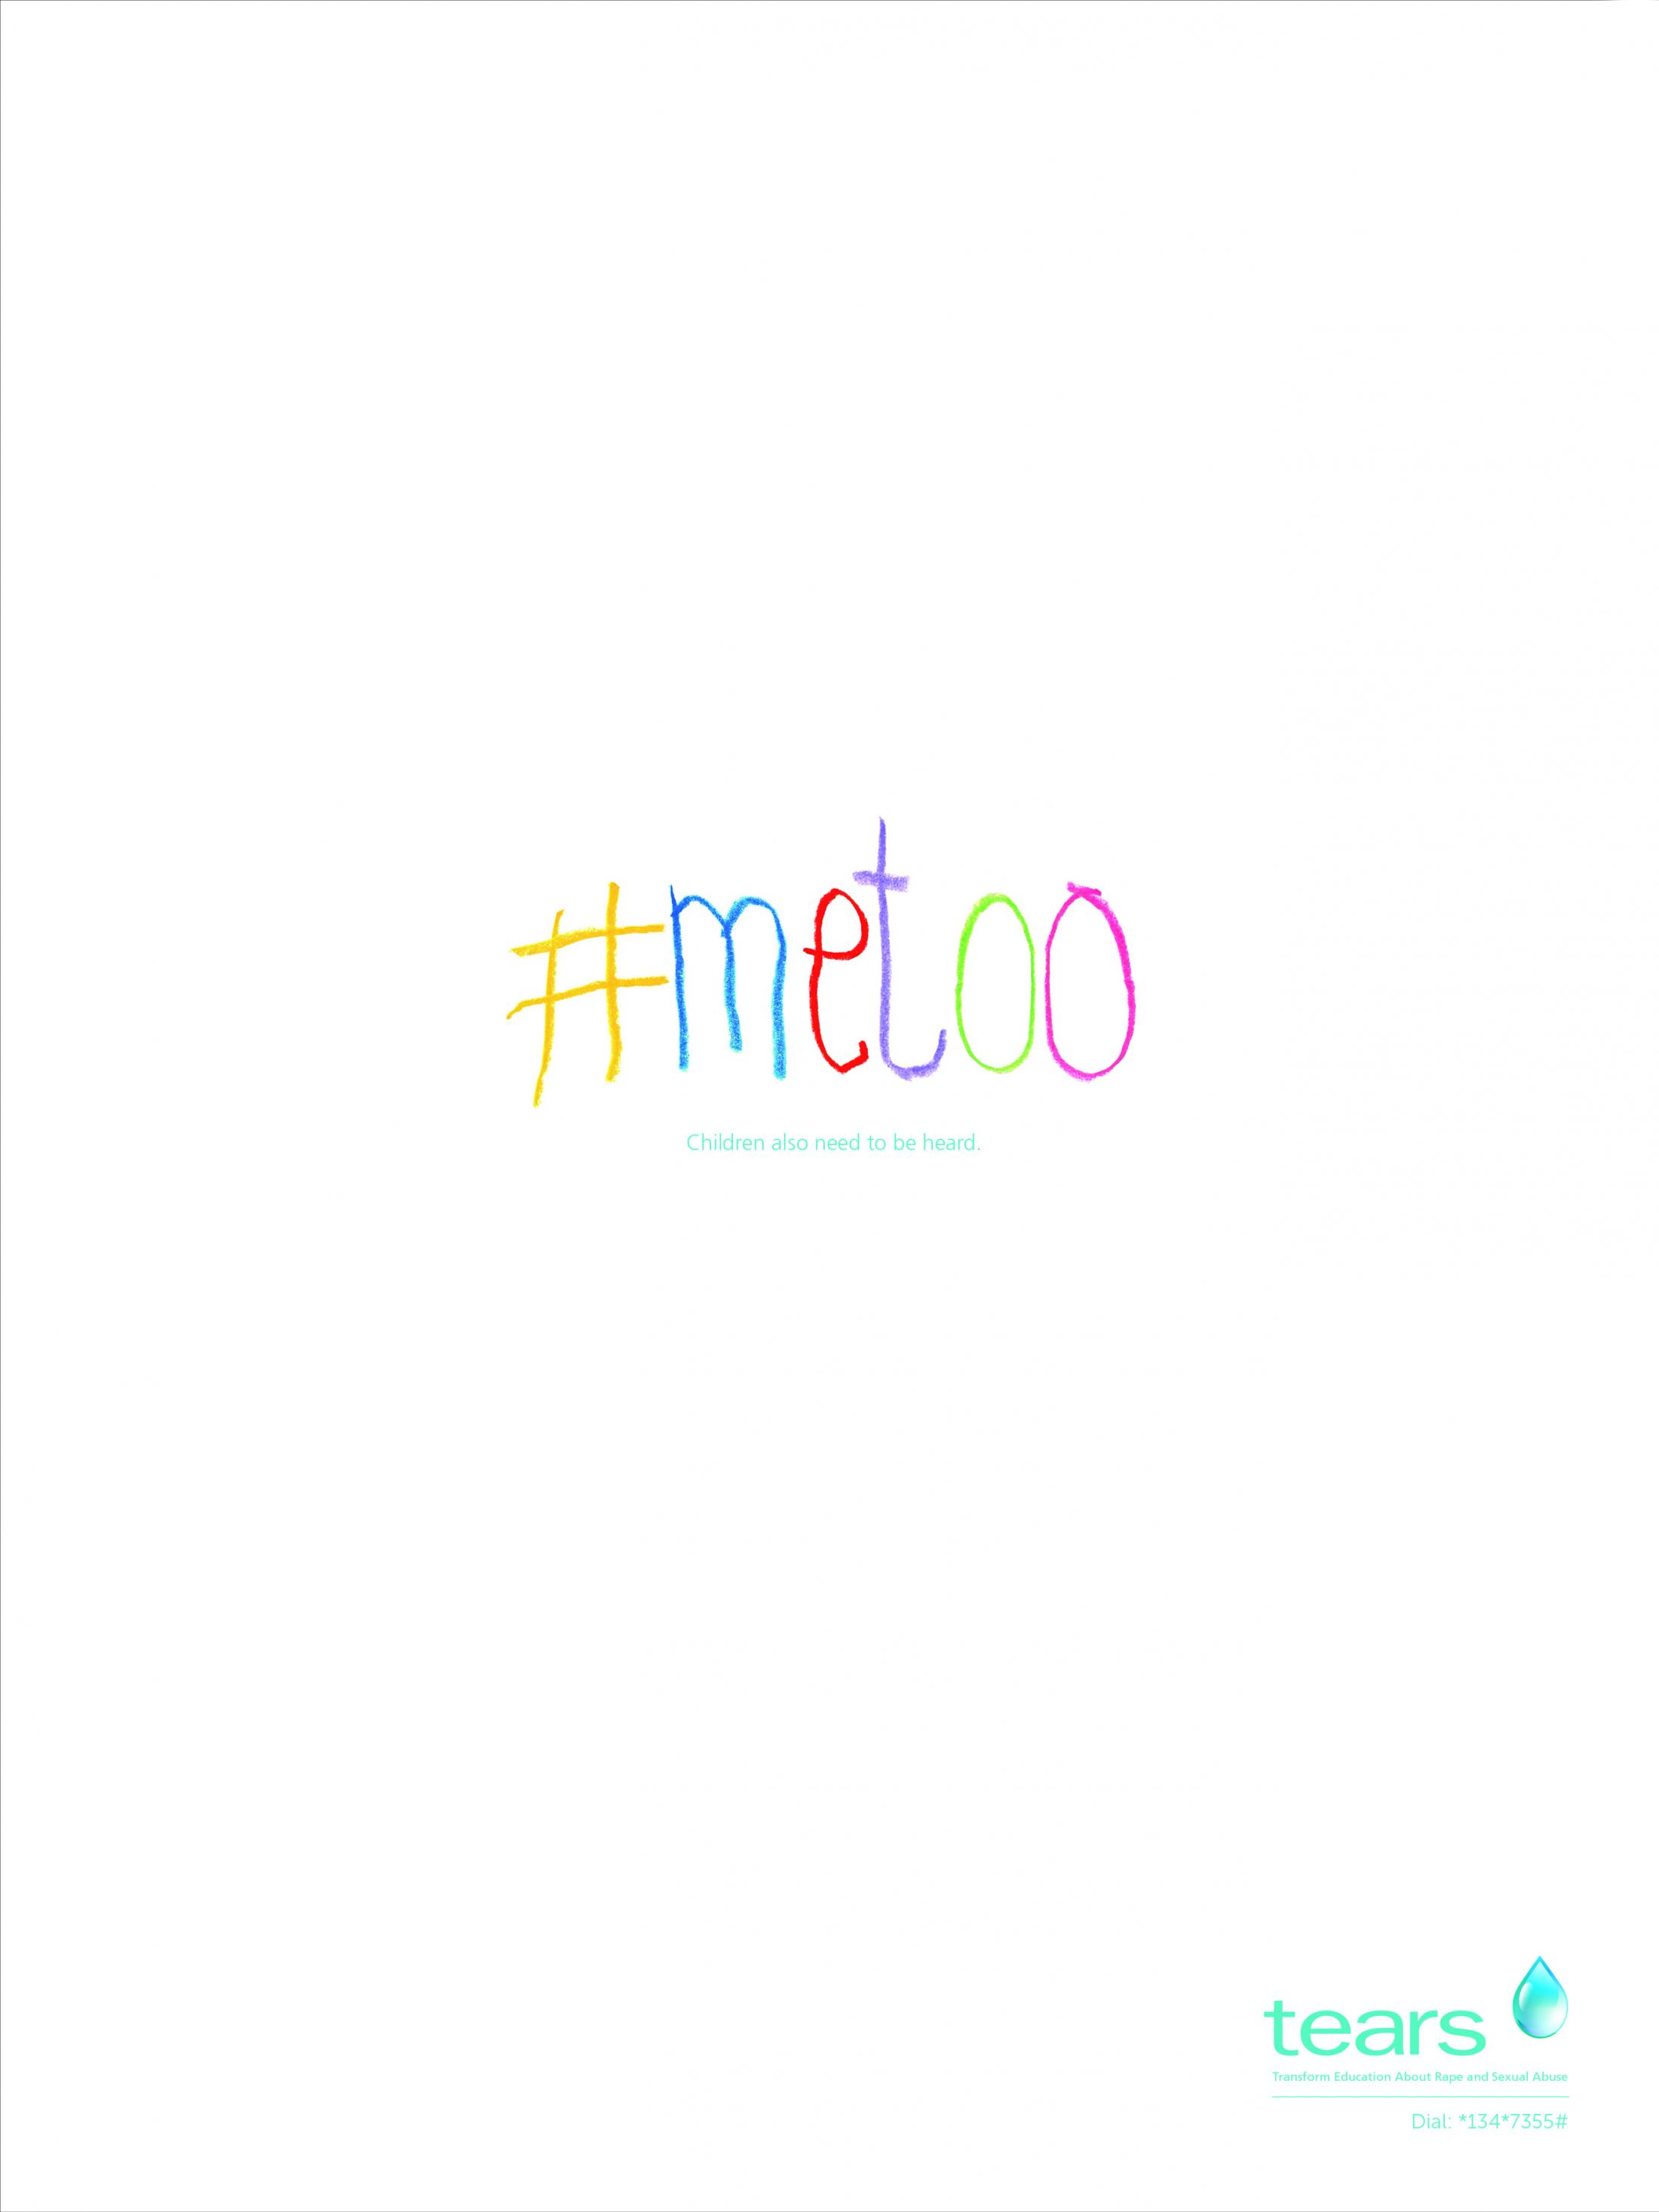 The Tears Foundation Print Ad - #MeToo - Children Also Need to Be Heard